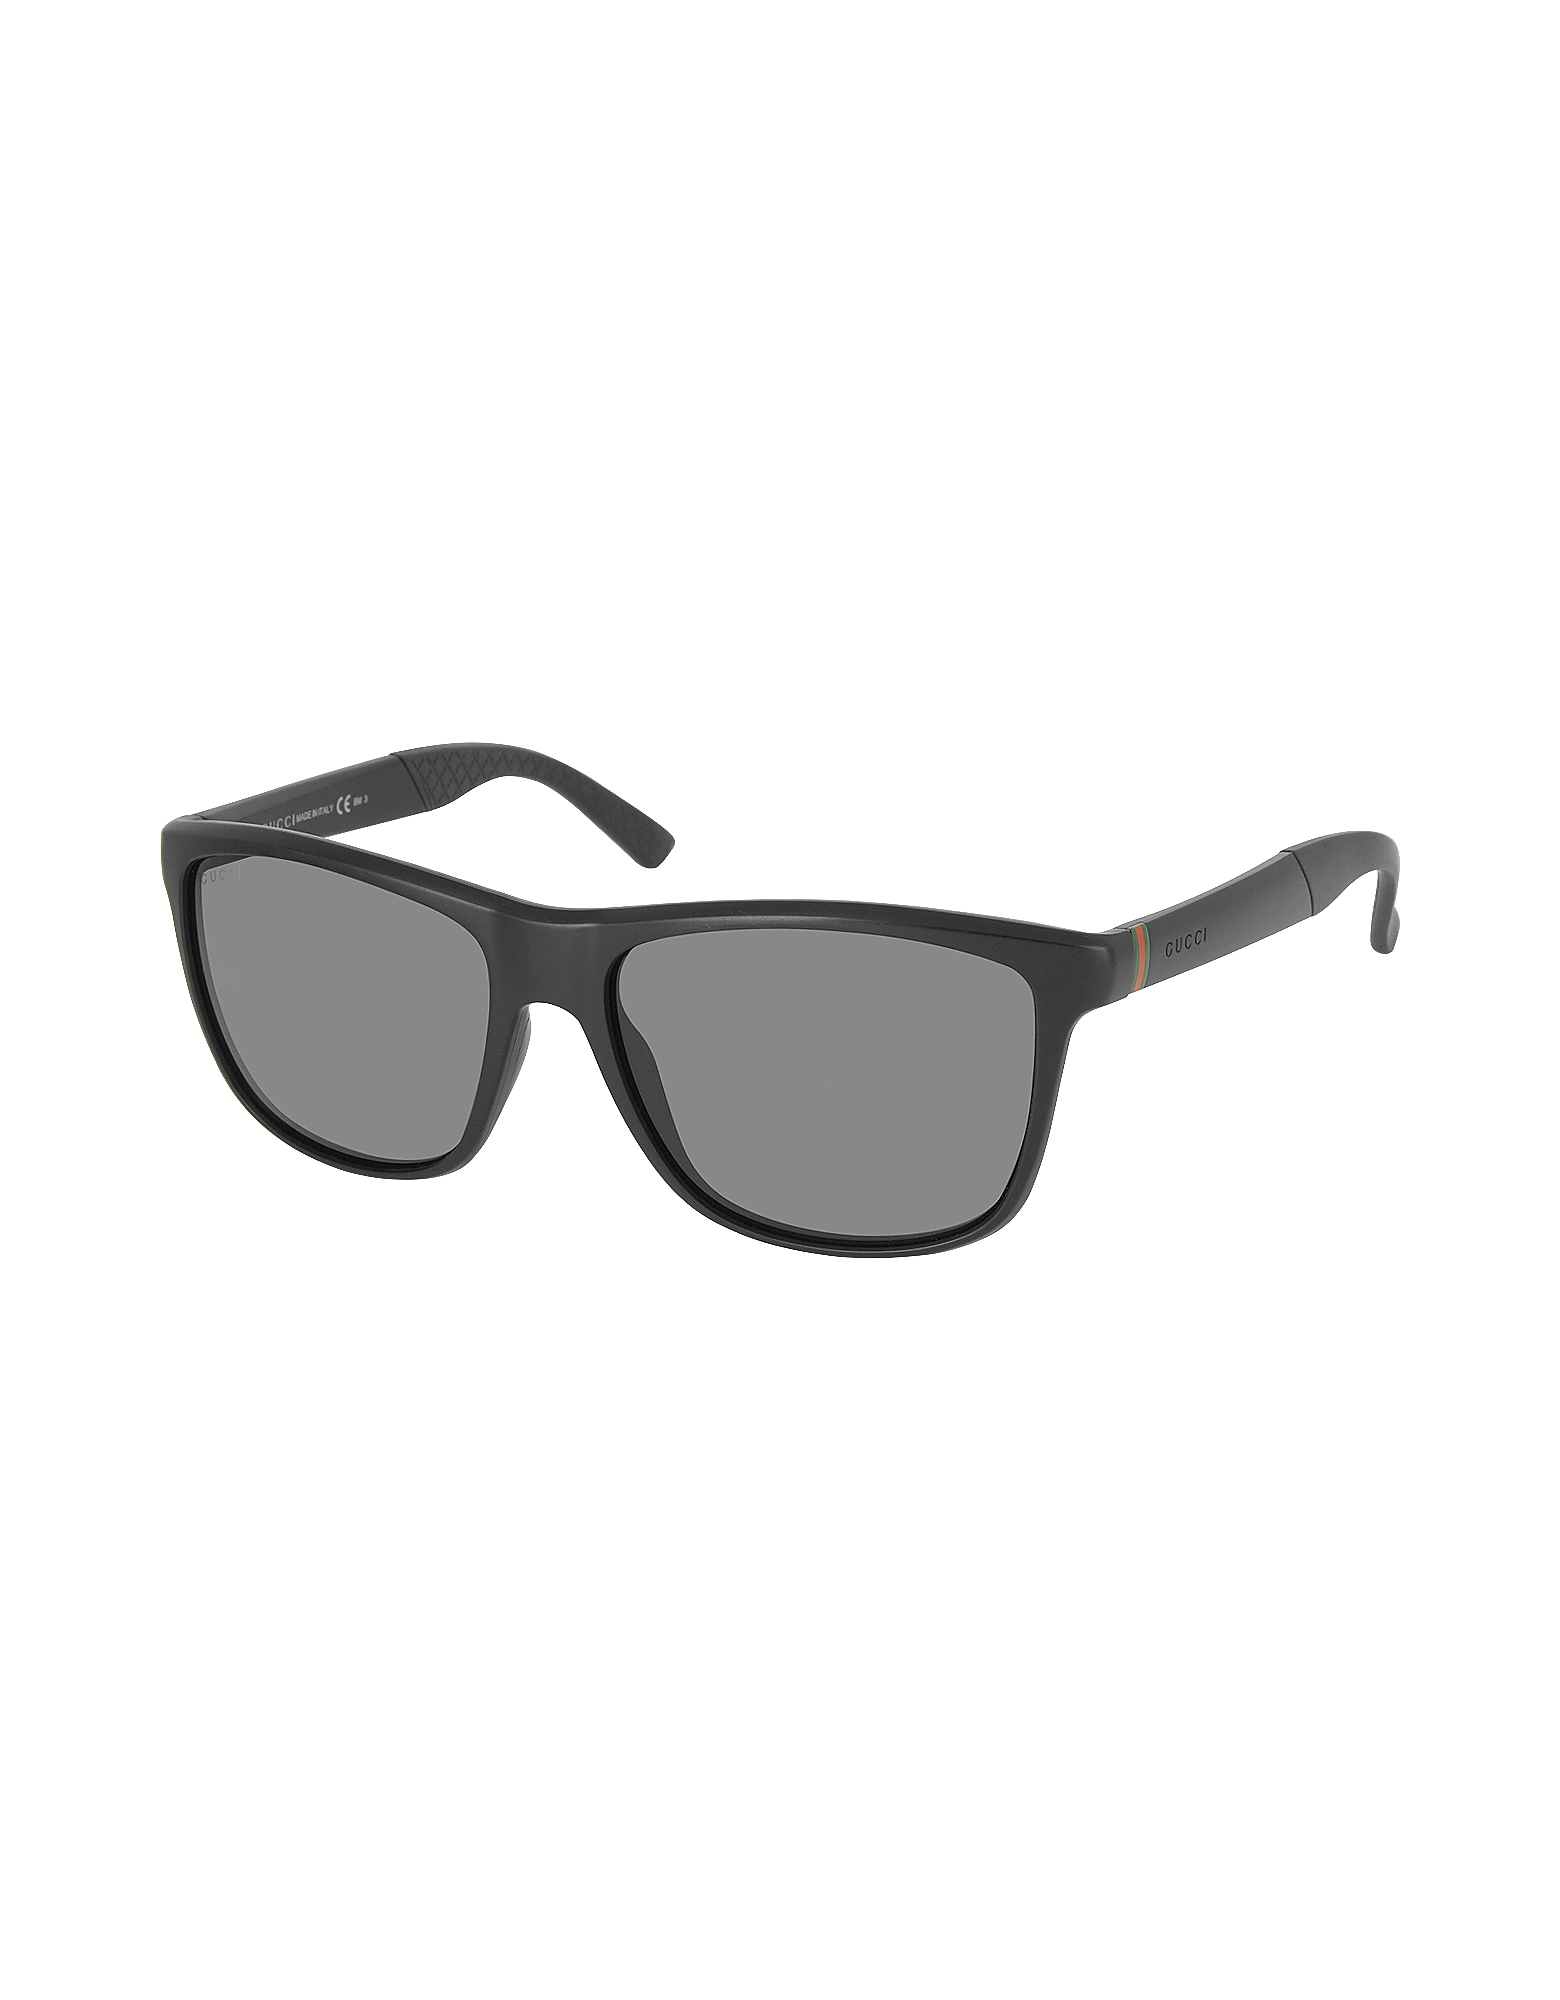 GG 1047/S DL5P9 Black Men's Sunglasses with Rubber Detail от Forzieri.com INT